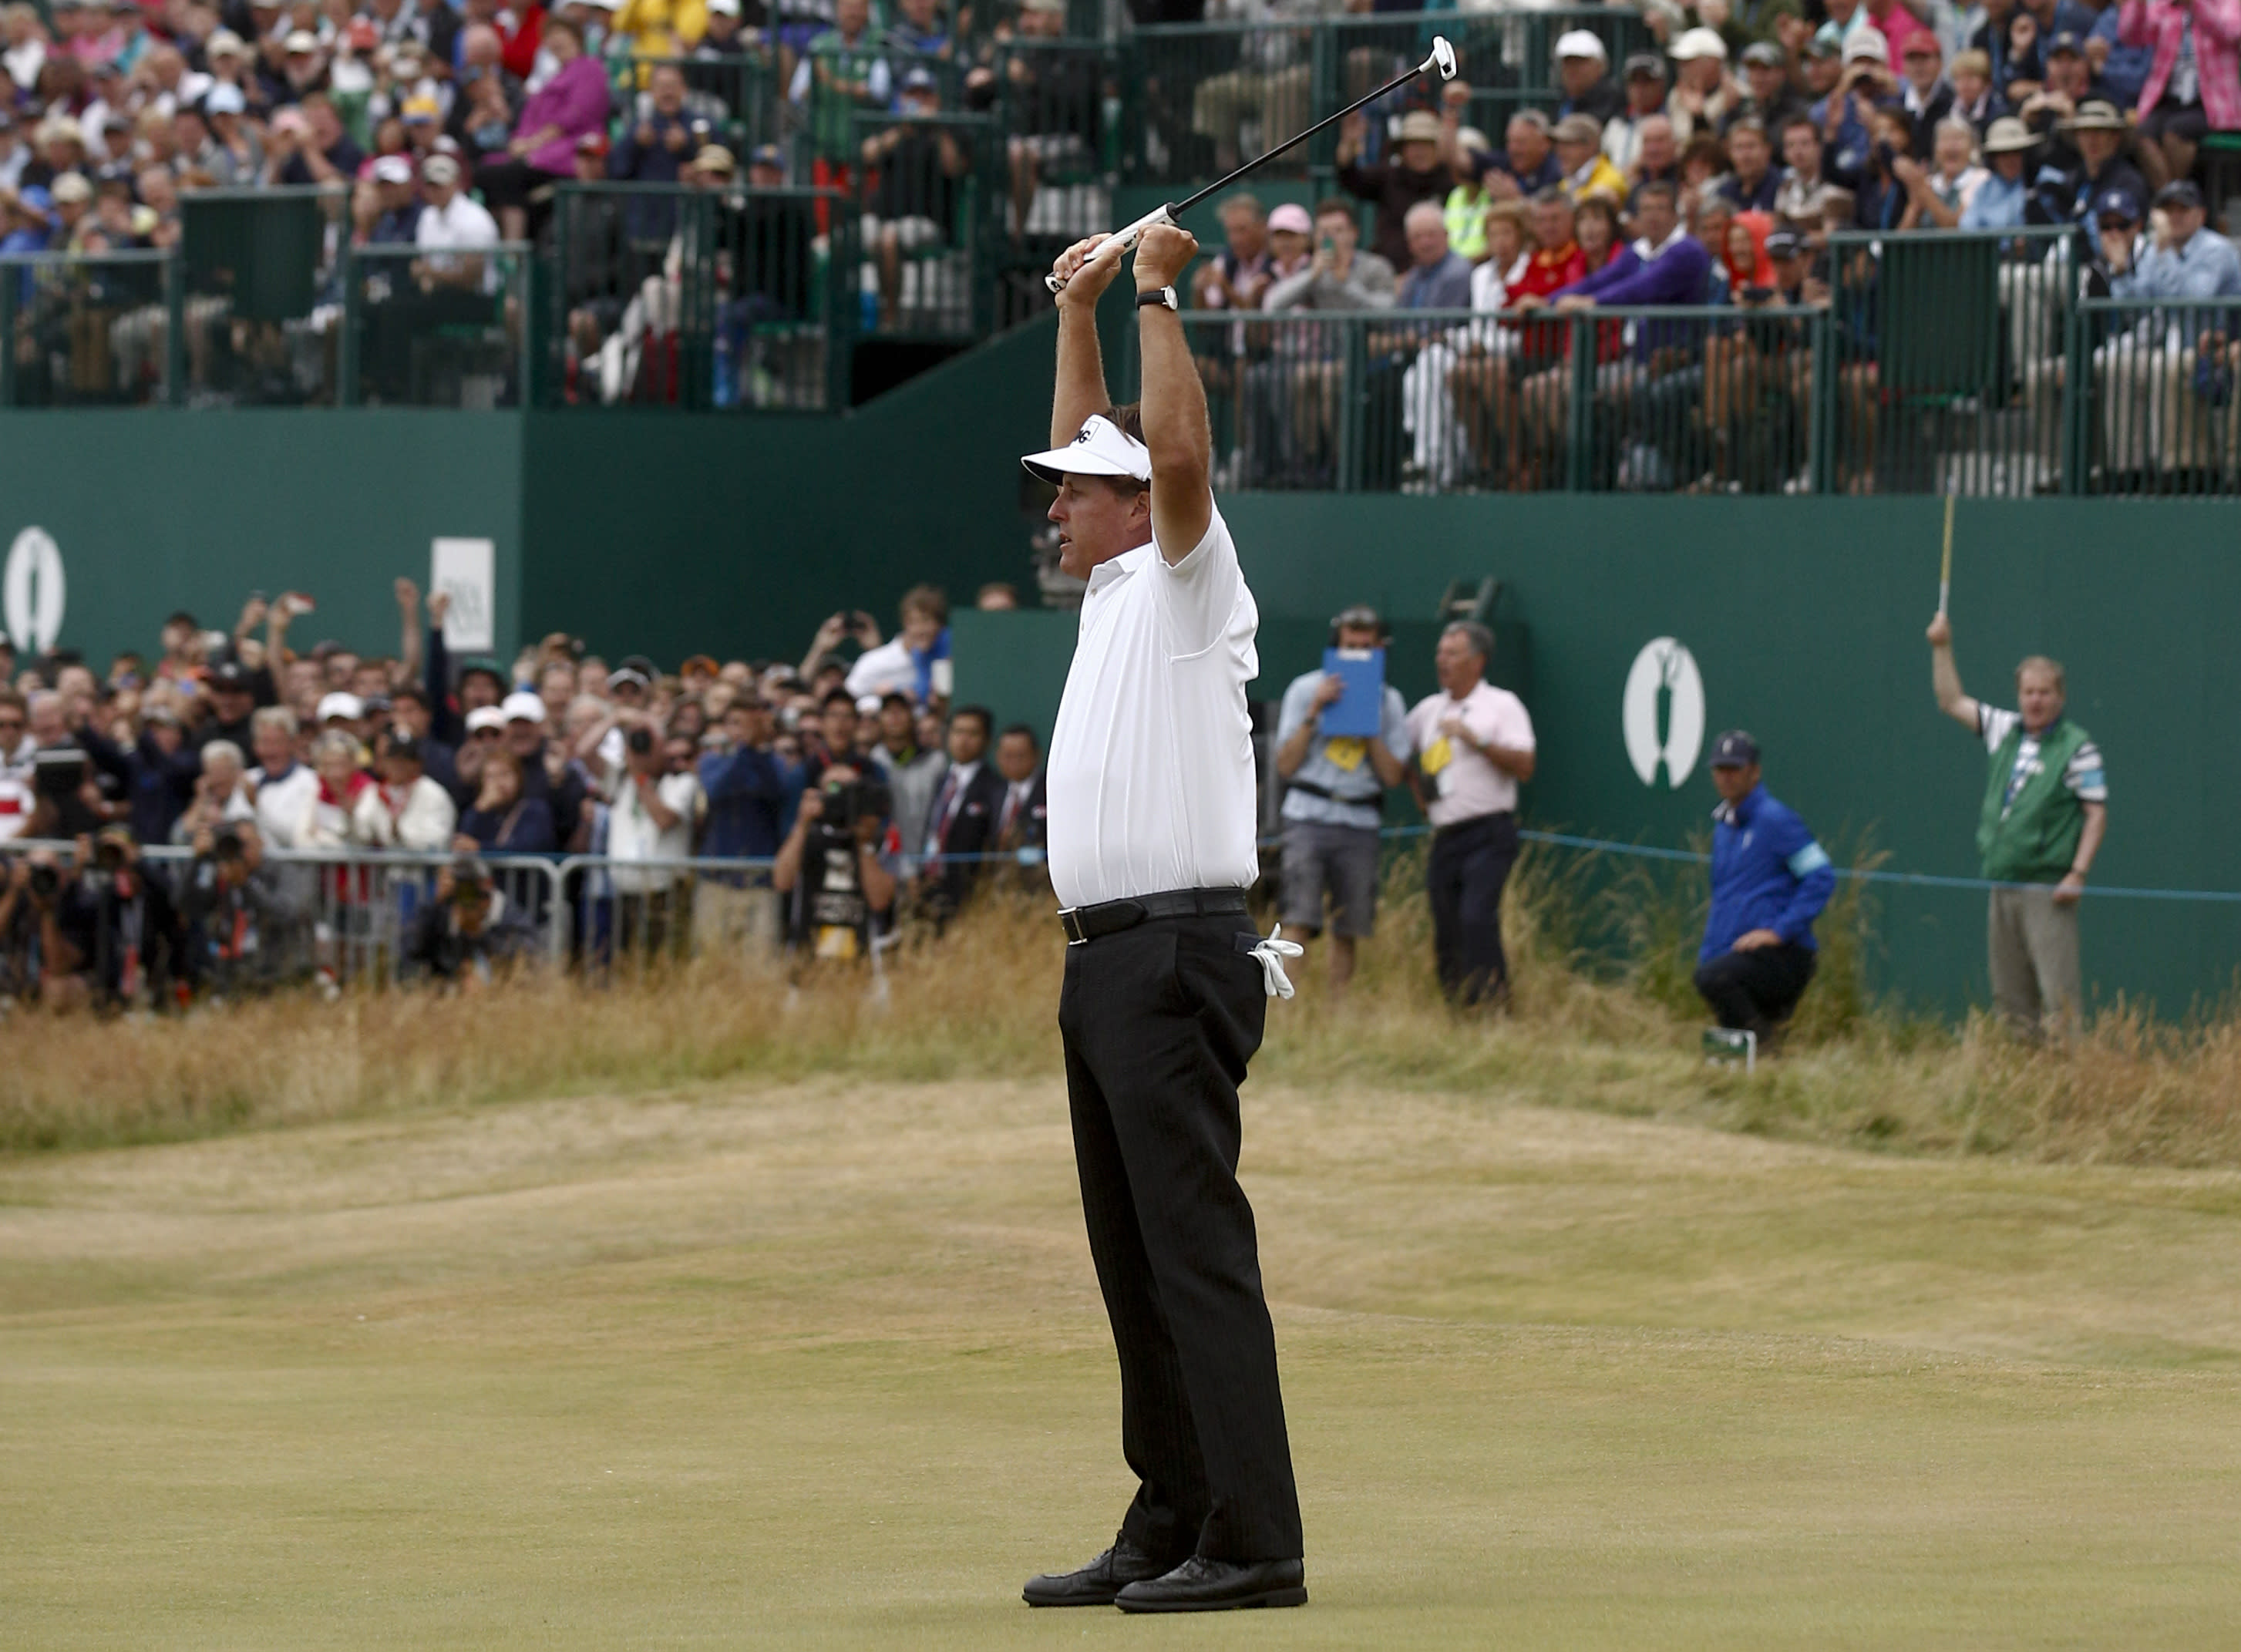 Phil Mickelson of the United States celebrates after his final putt on the 18th green during the final round of the British Open Golf Championship at Muirfield, in Gullane, Scotland, Sunday, July 21, 2013. (AP Photo/Jon Super)